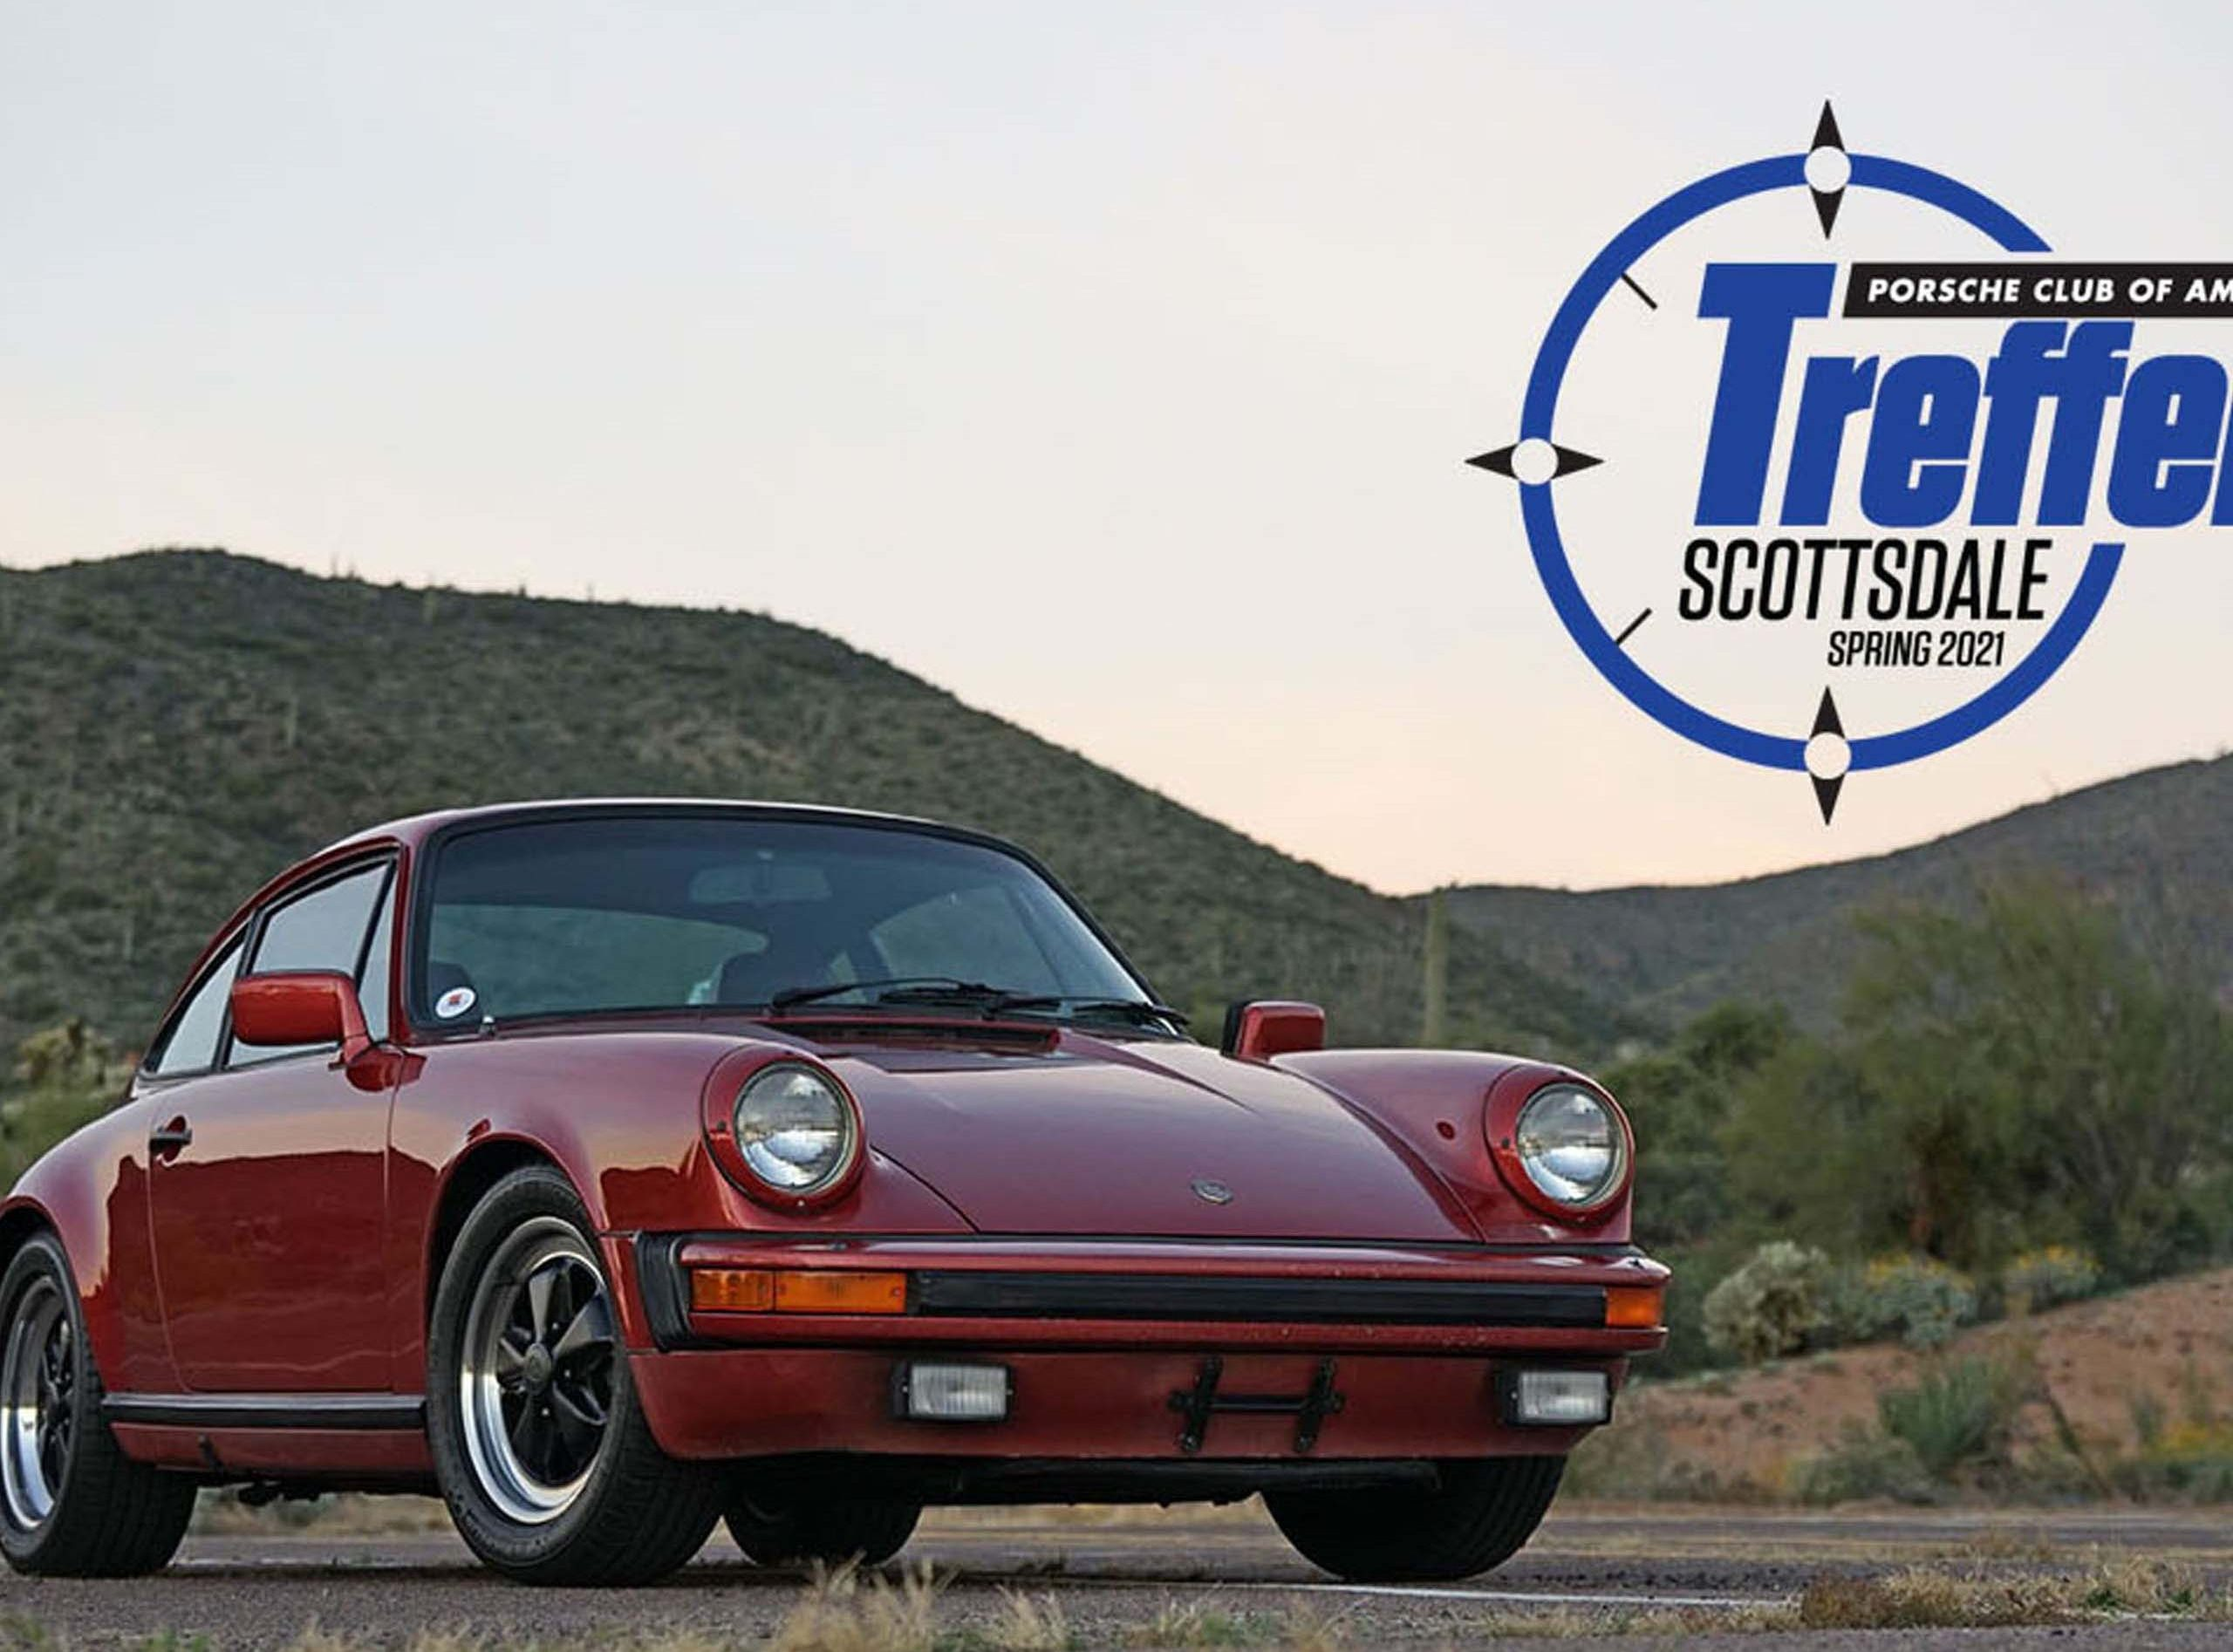 Spring 2021 Treffen Scottsdale - May 5-9, 2021 - SOLD OUT! Registration Opens February 24, 2021